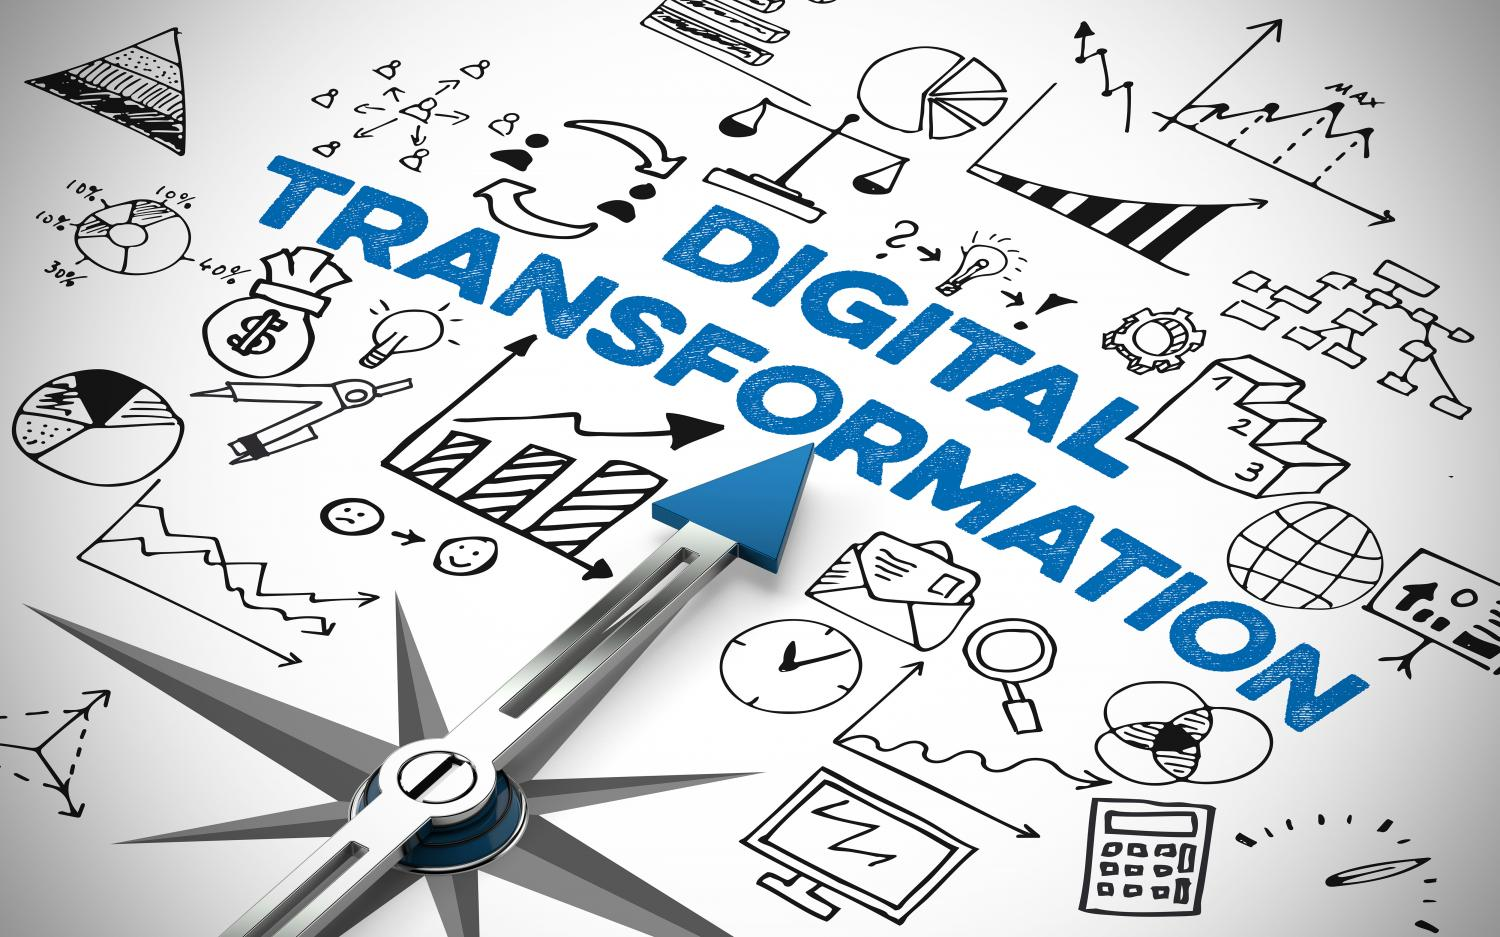 Investors say the pandemic is accelerating the digital transformation in a broad range of sectors.